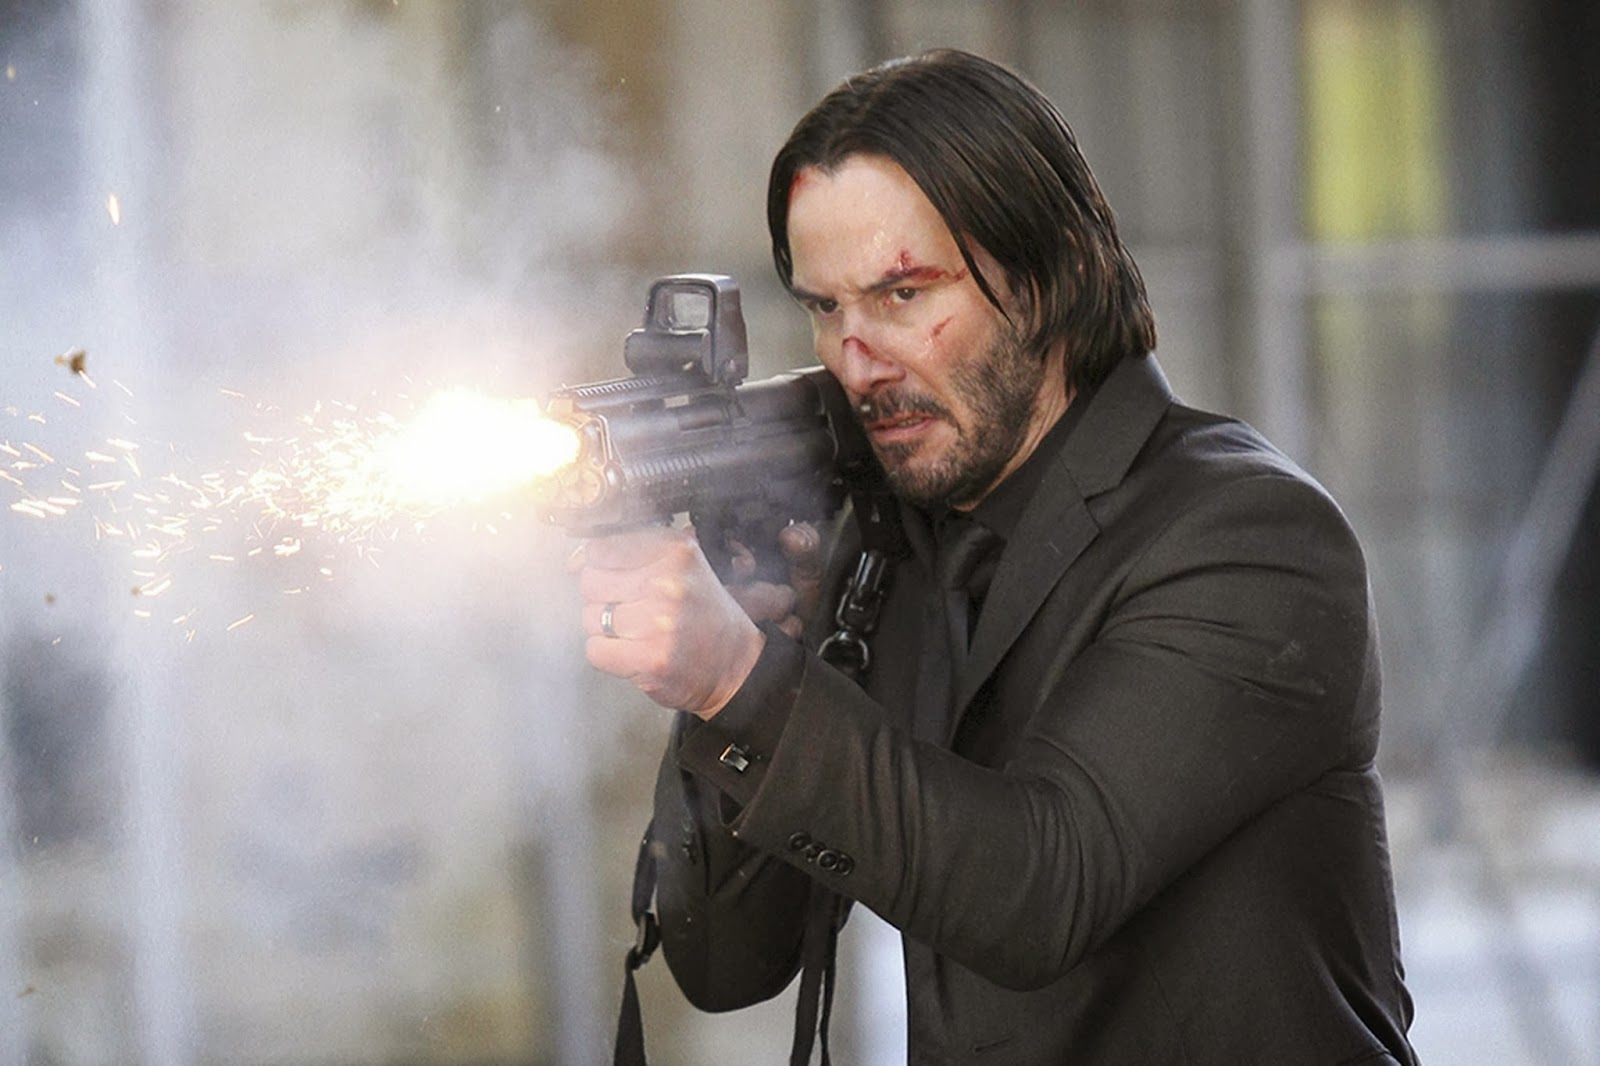 Playable John Wick coming as free DLC to Payday 2 | VG247